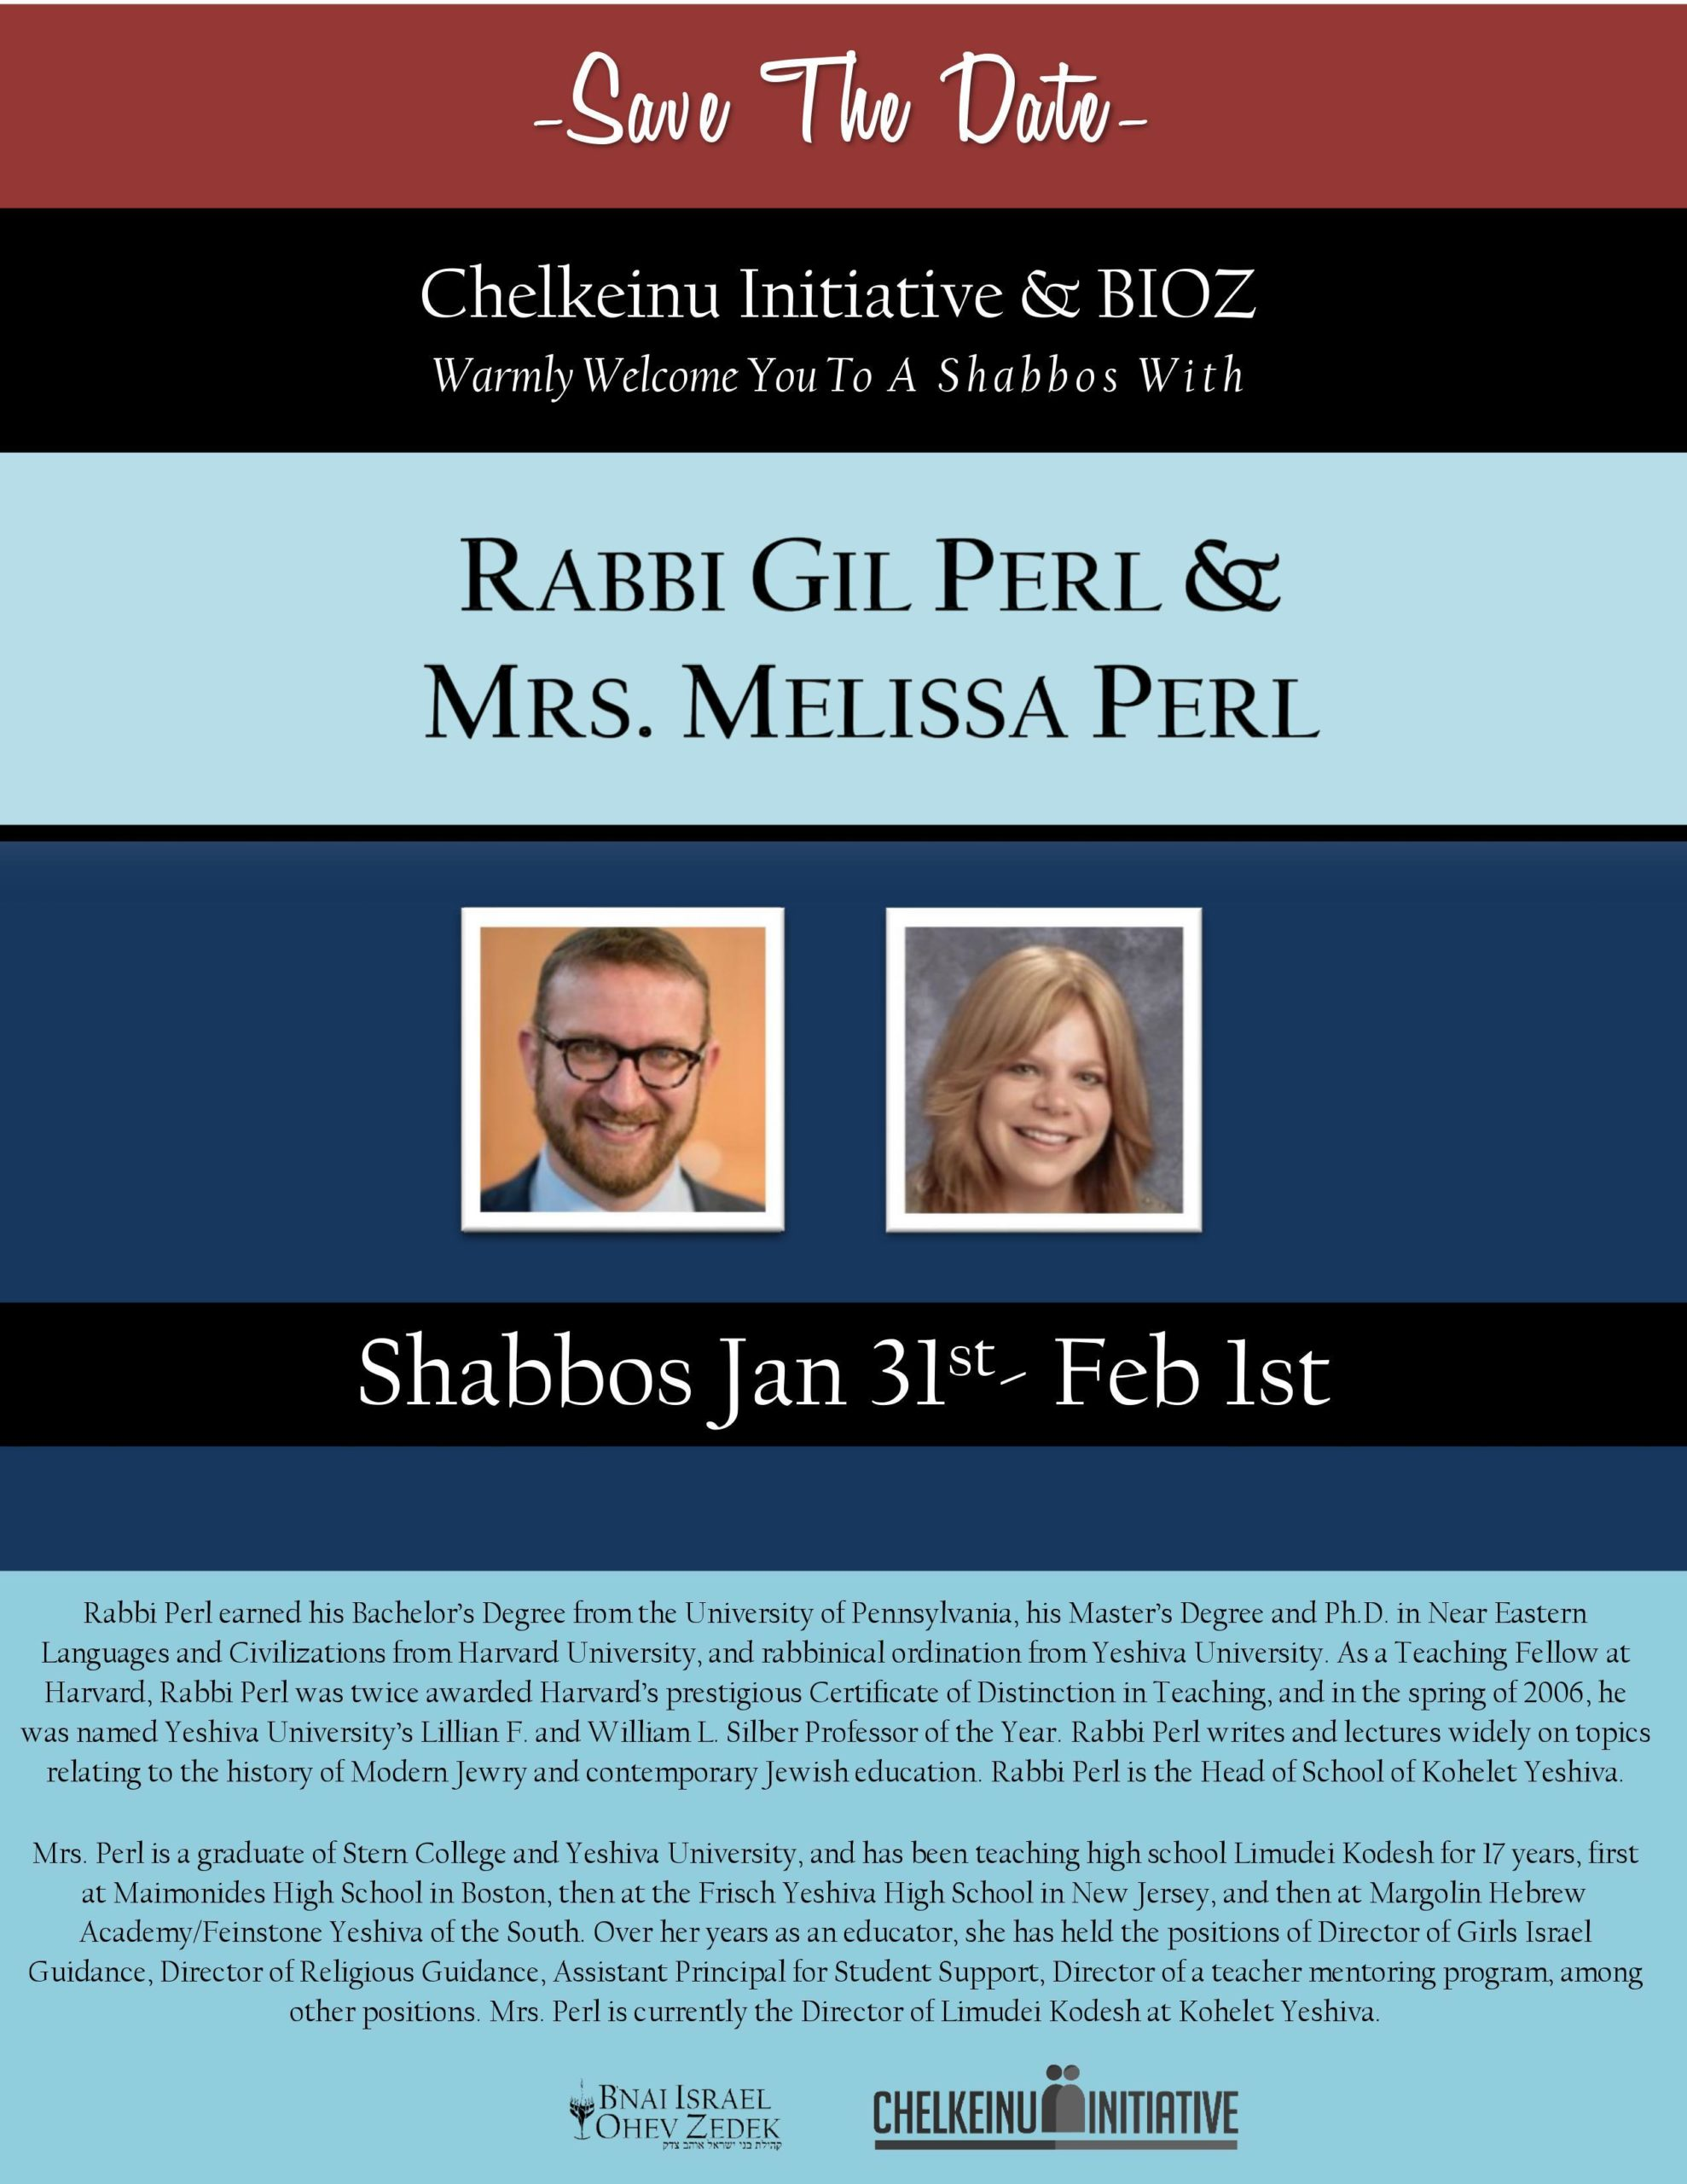 Shabbos with Rabbi and Mrs Perl